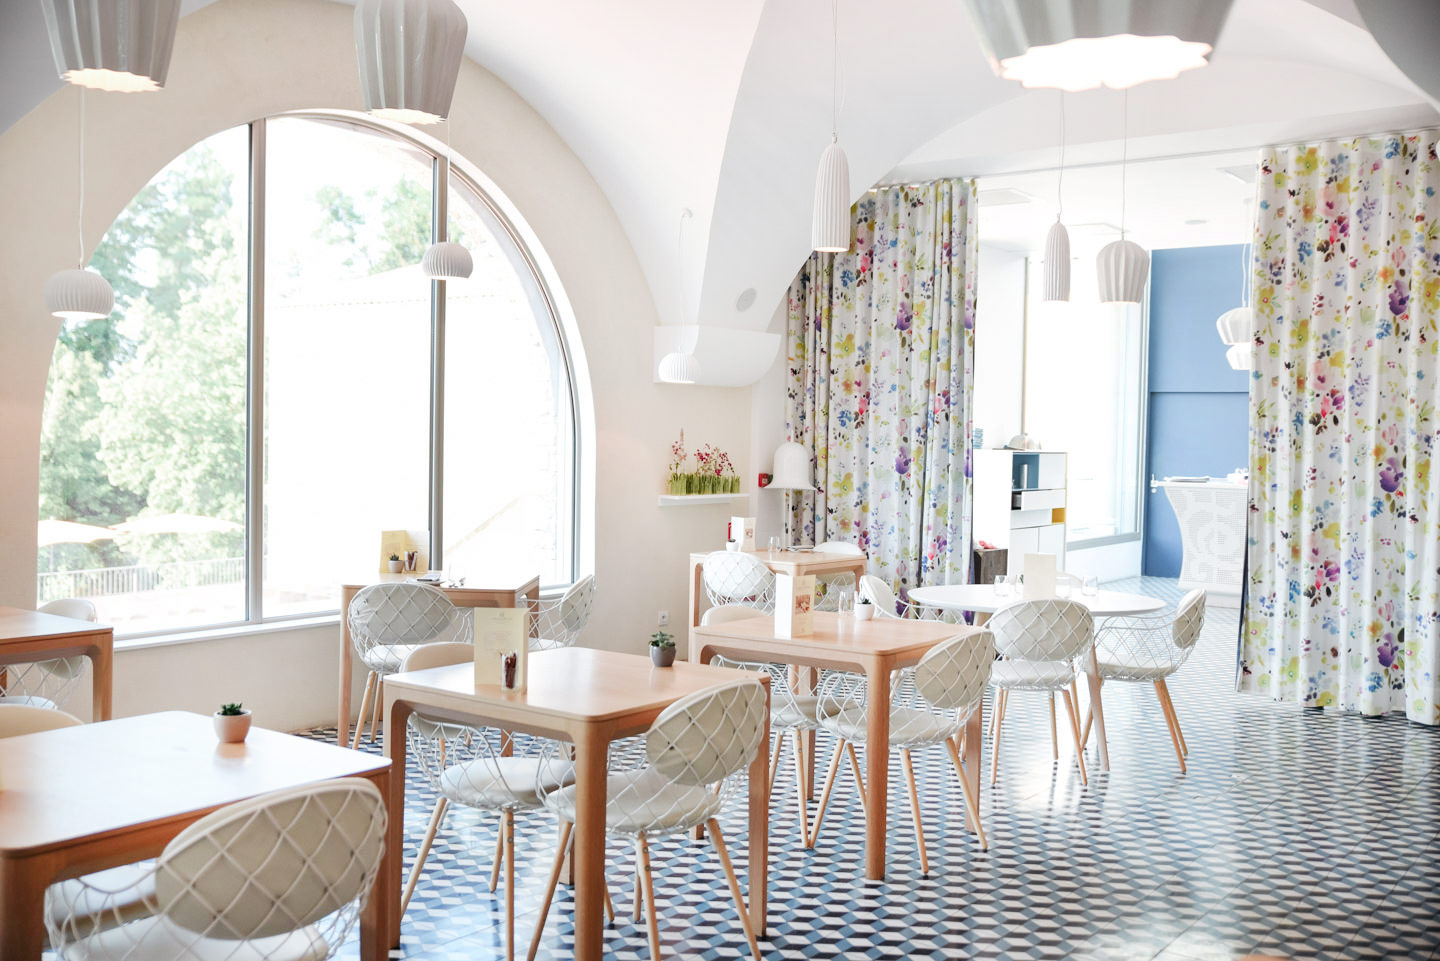 Blog-Mode-And-The-City-Lifestyle-Provence-Couvent-Minimes-Manosque-Fourcalquier-5